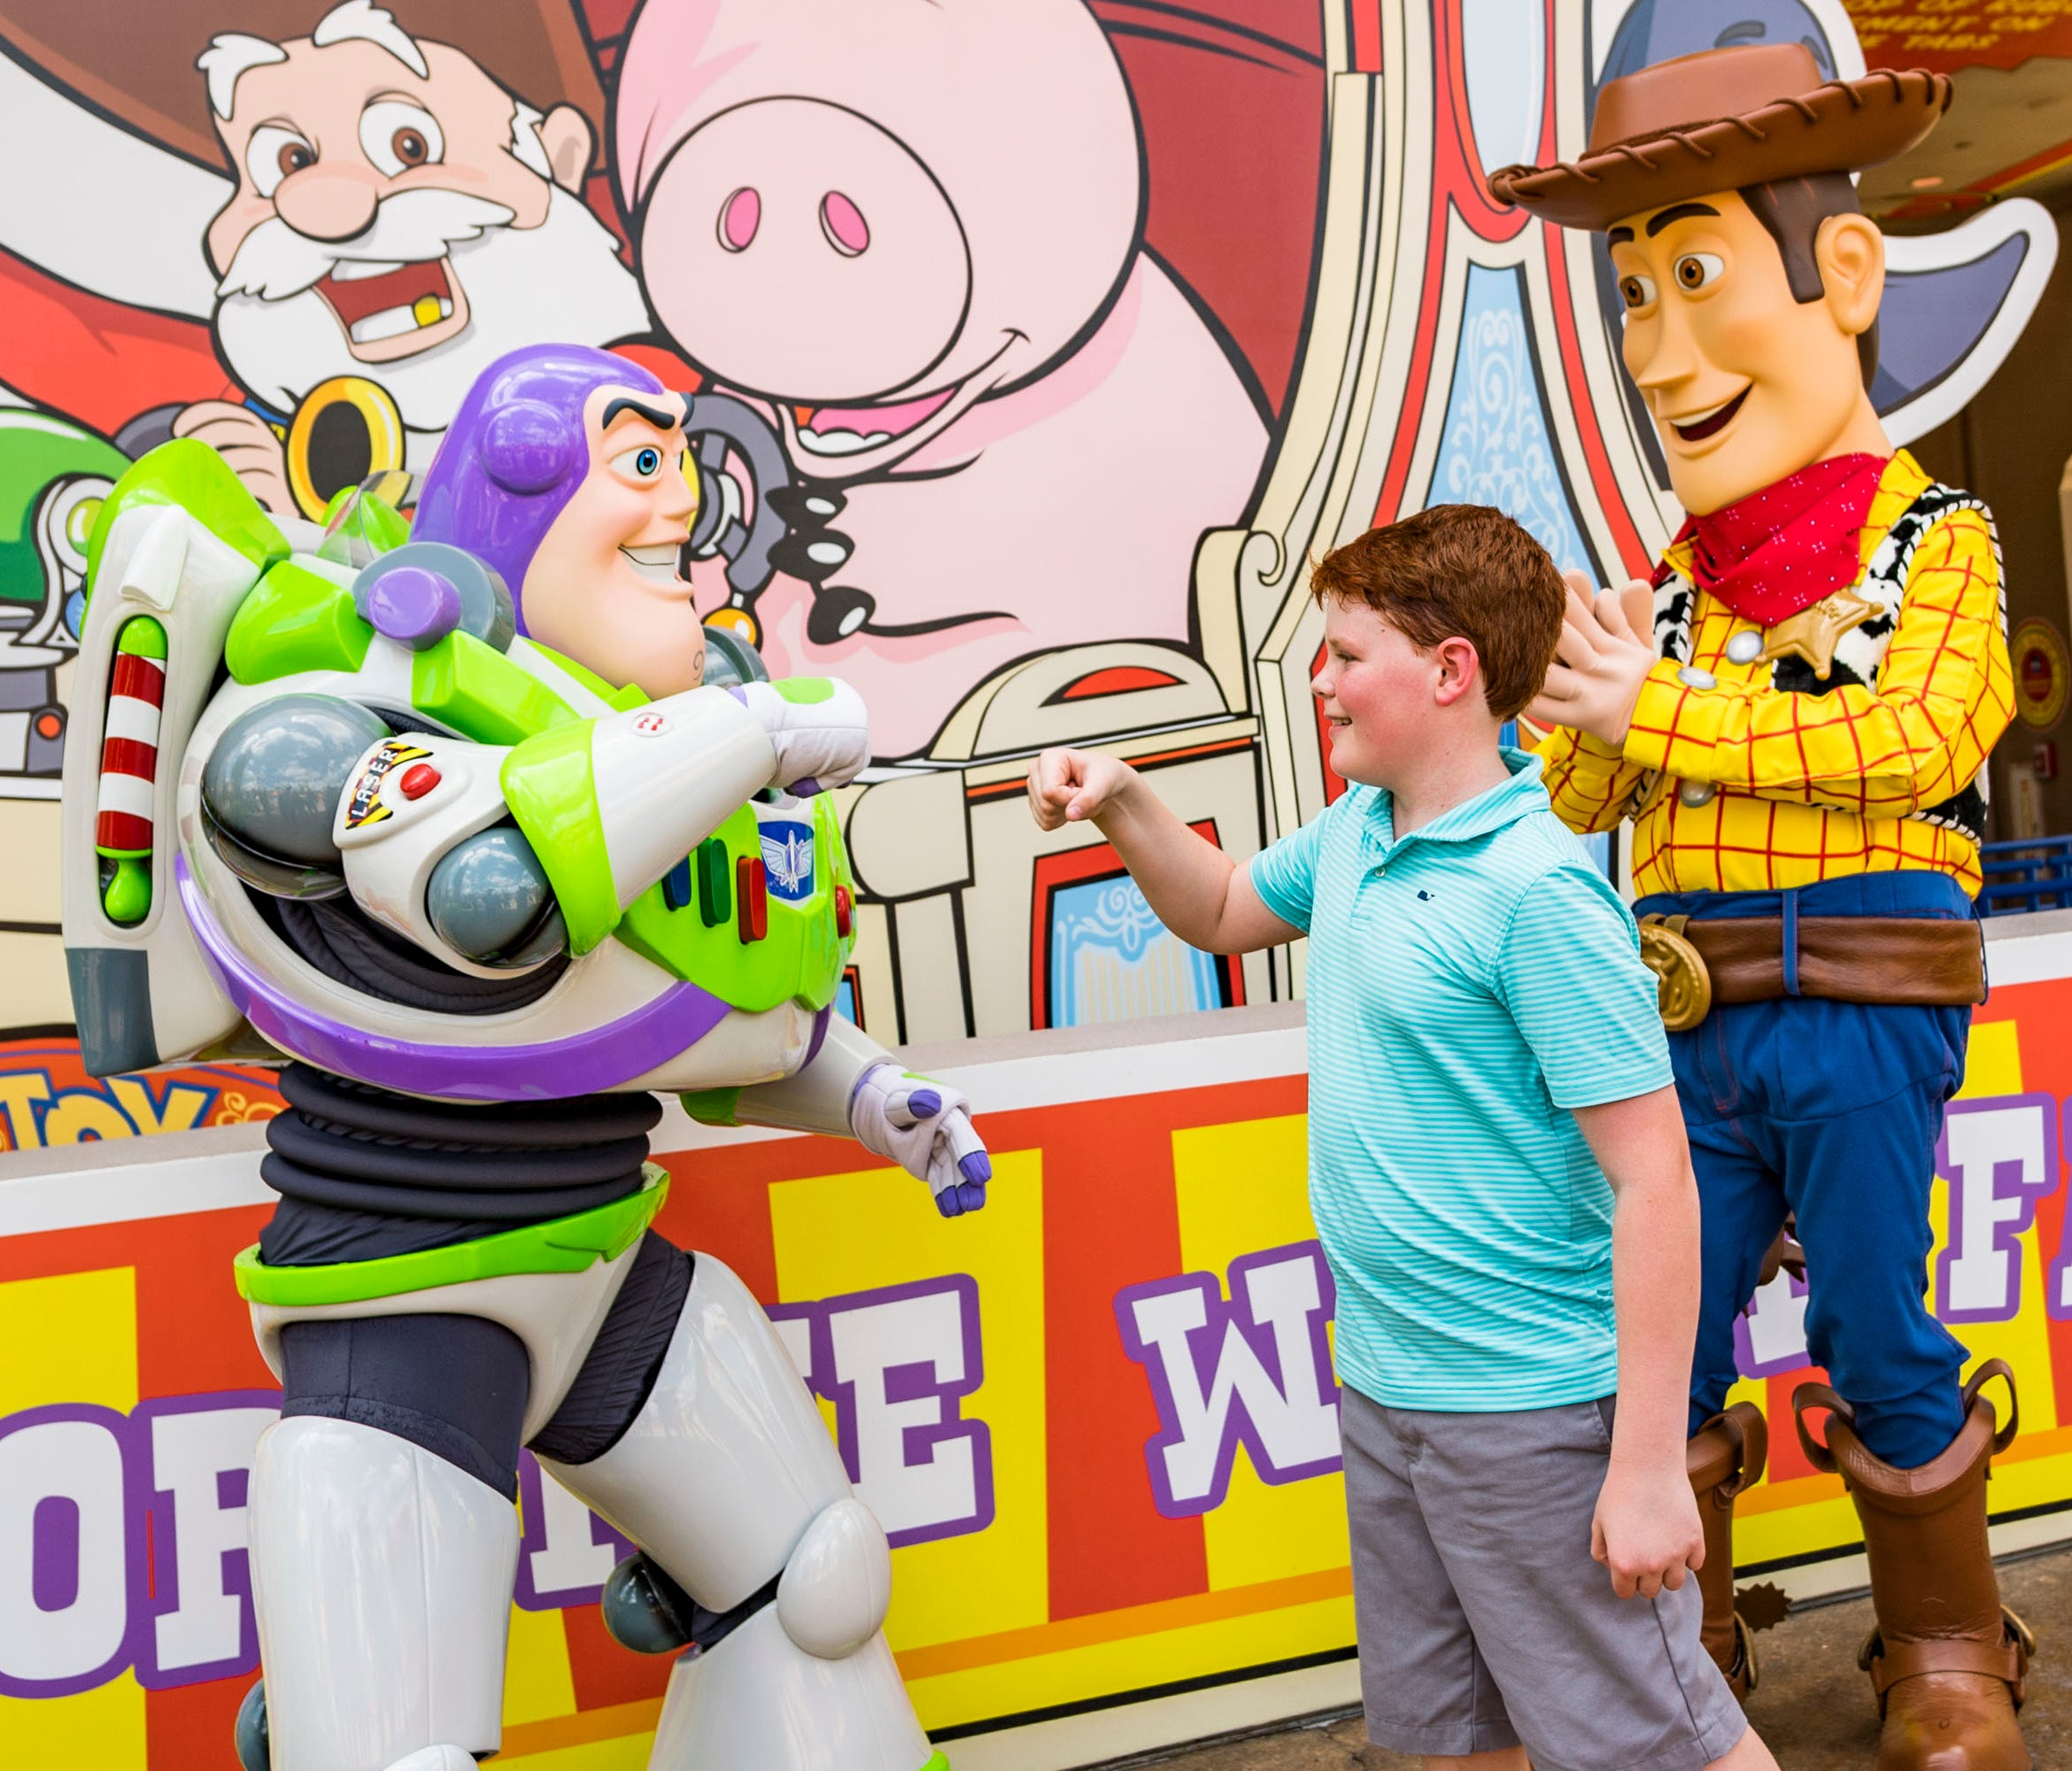 Beloved characters from Pixar Animation StudiosÕ Toy Story films, including Buzz Lightyear and Woody, await guests who visit Toy Story Land at DisneyÕs Hollywood Studios. The 11-acre land transports Walt Disney World guests into the adventurous outdo